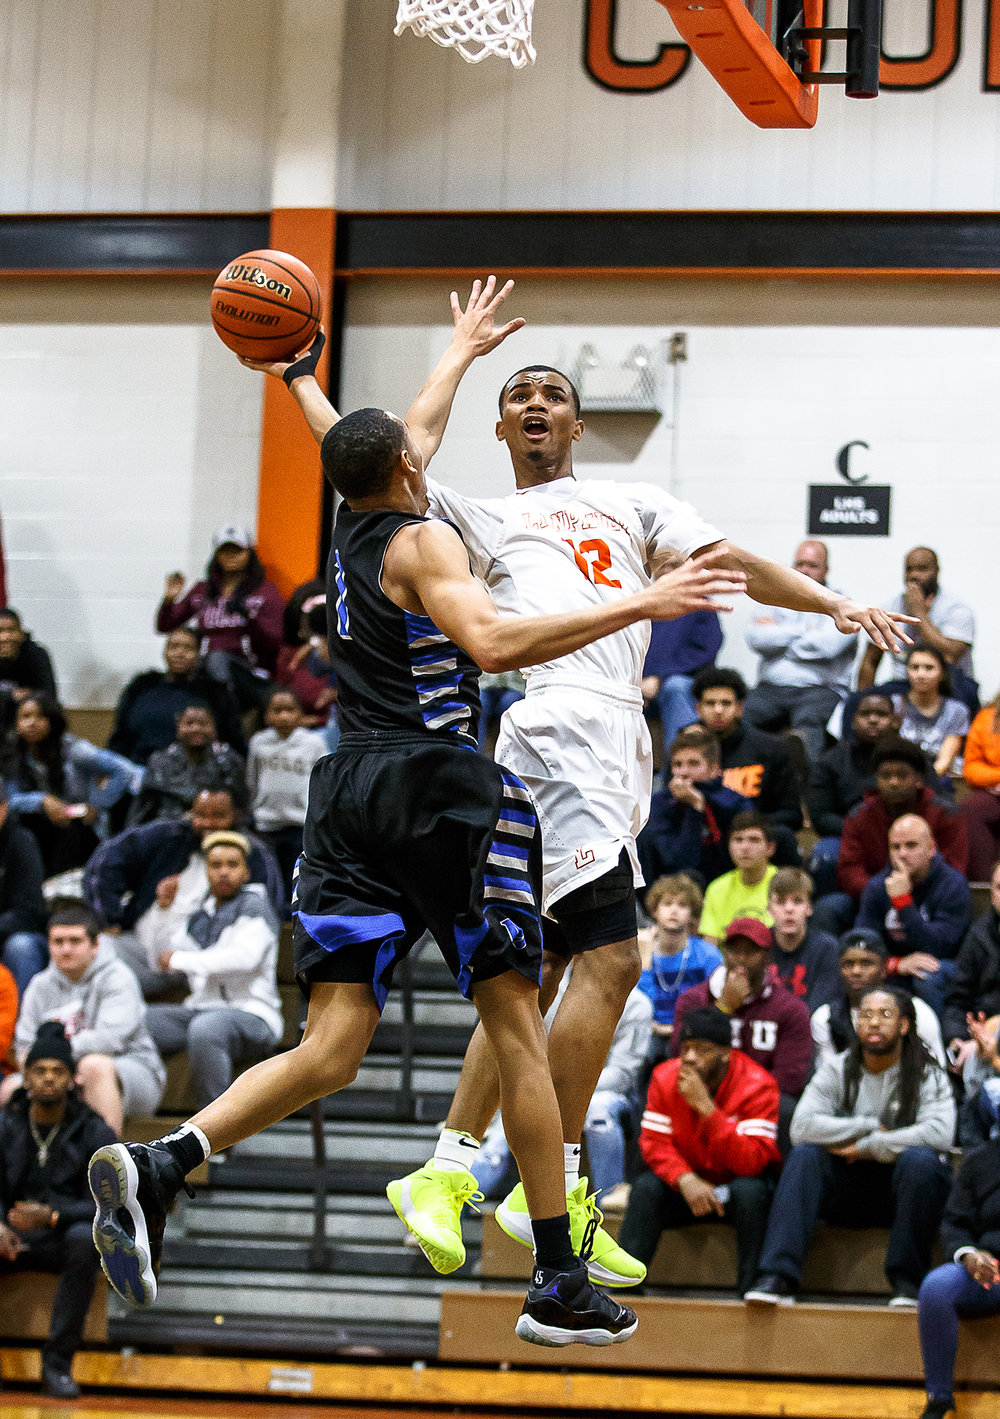 Lanphier's Cardell McGee (12) goes up for a shot against Decatur MacArthur's Zach Briggs (1) in the first half at Lober-Nika gymnasium, Saturday, Feb. 10, 2018, in Springfield, Ill. [Justin L. Fowler/The State Journal-Register]